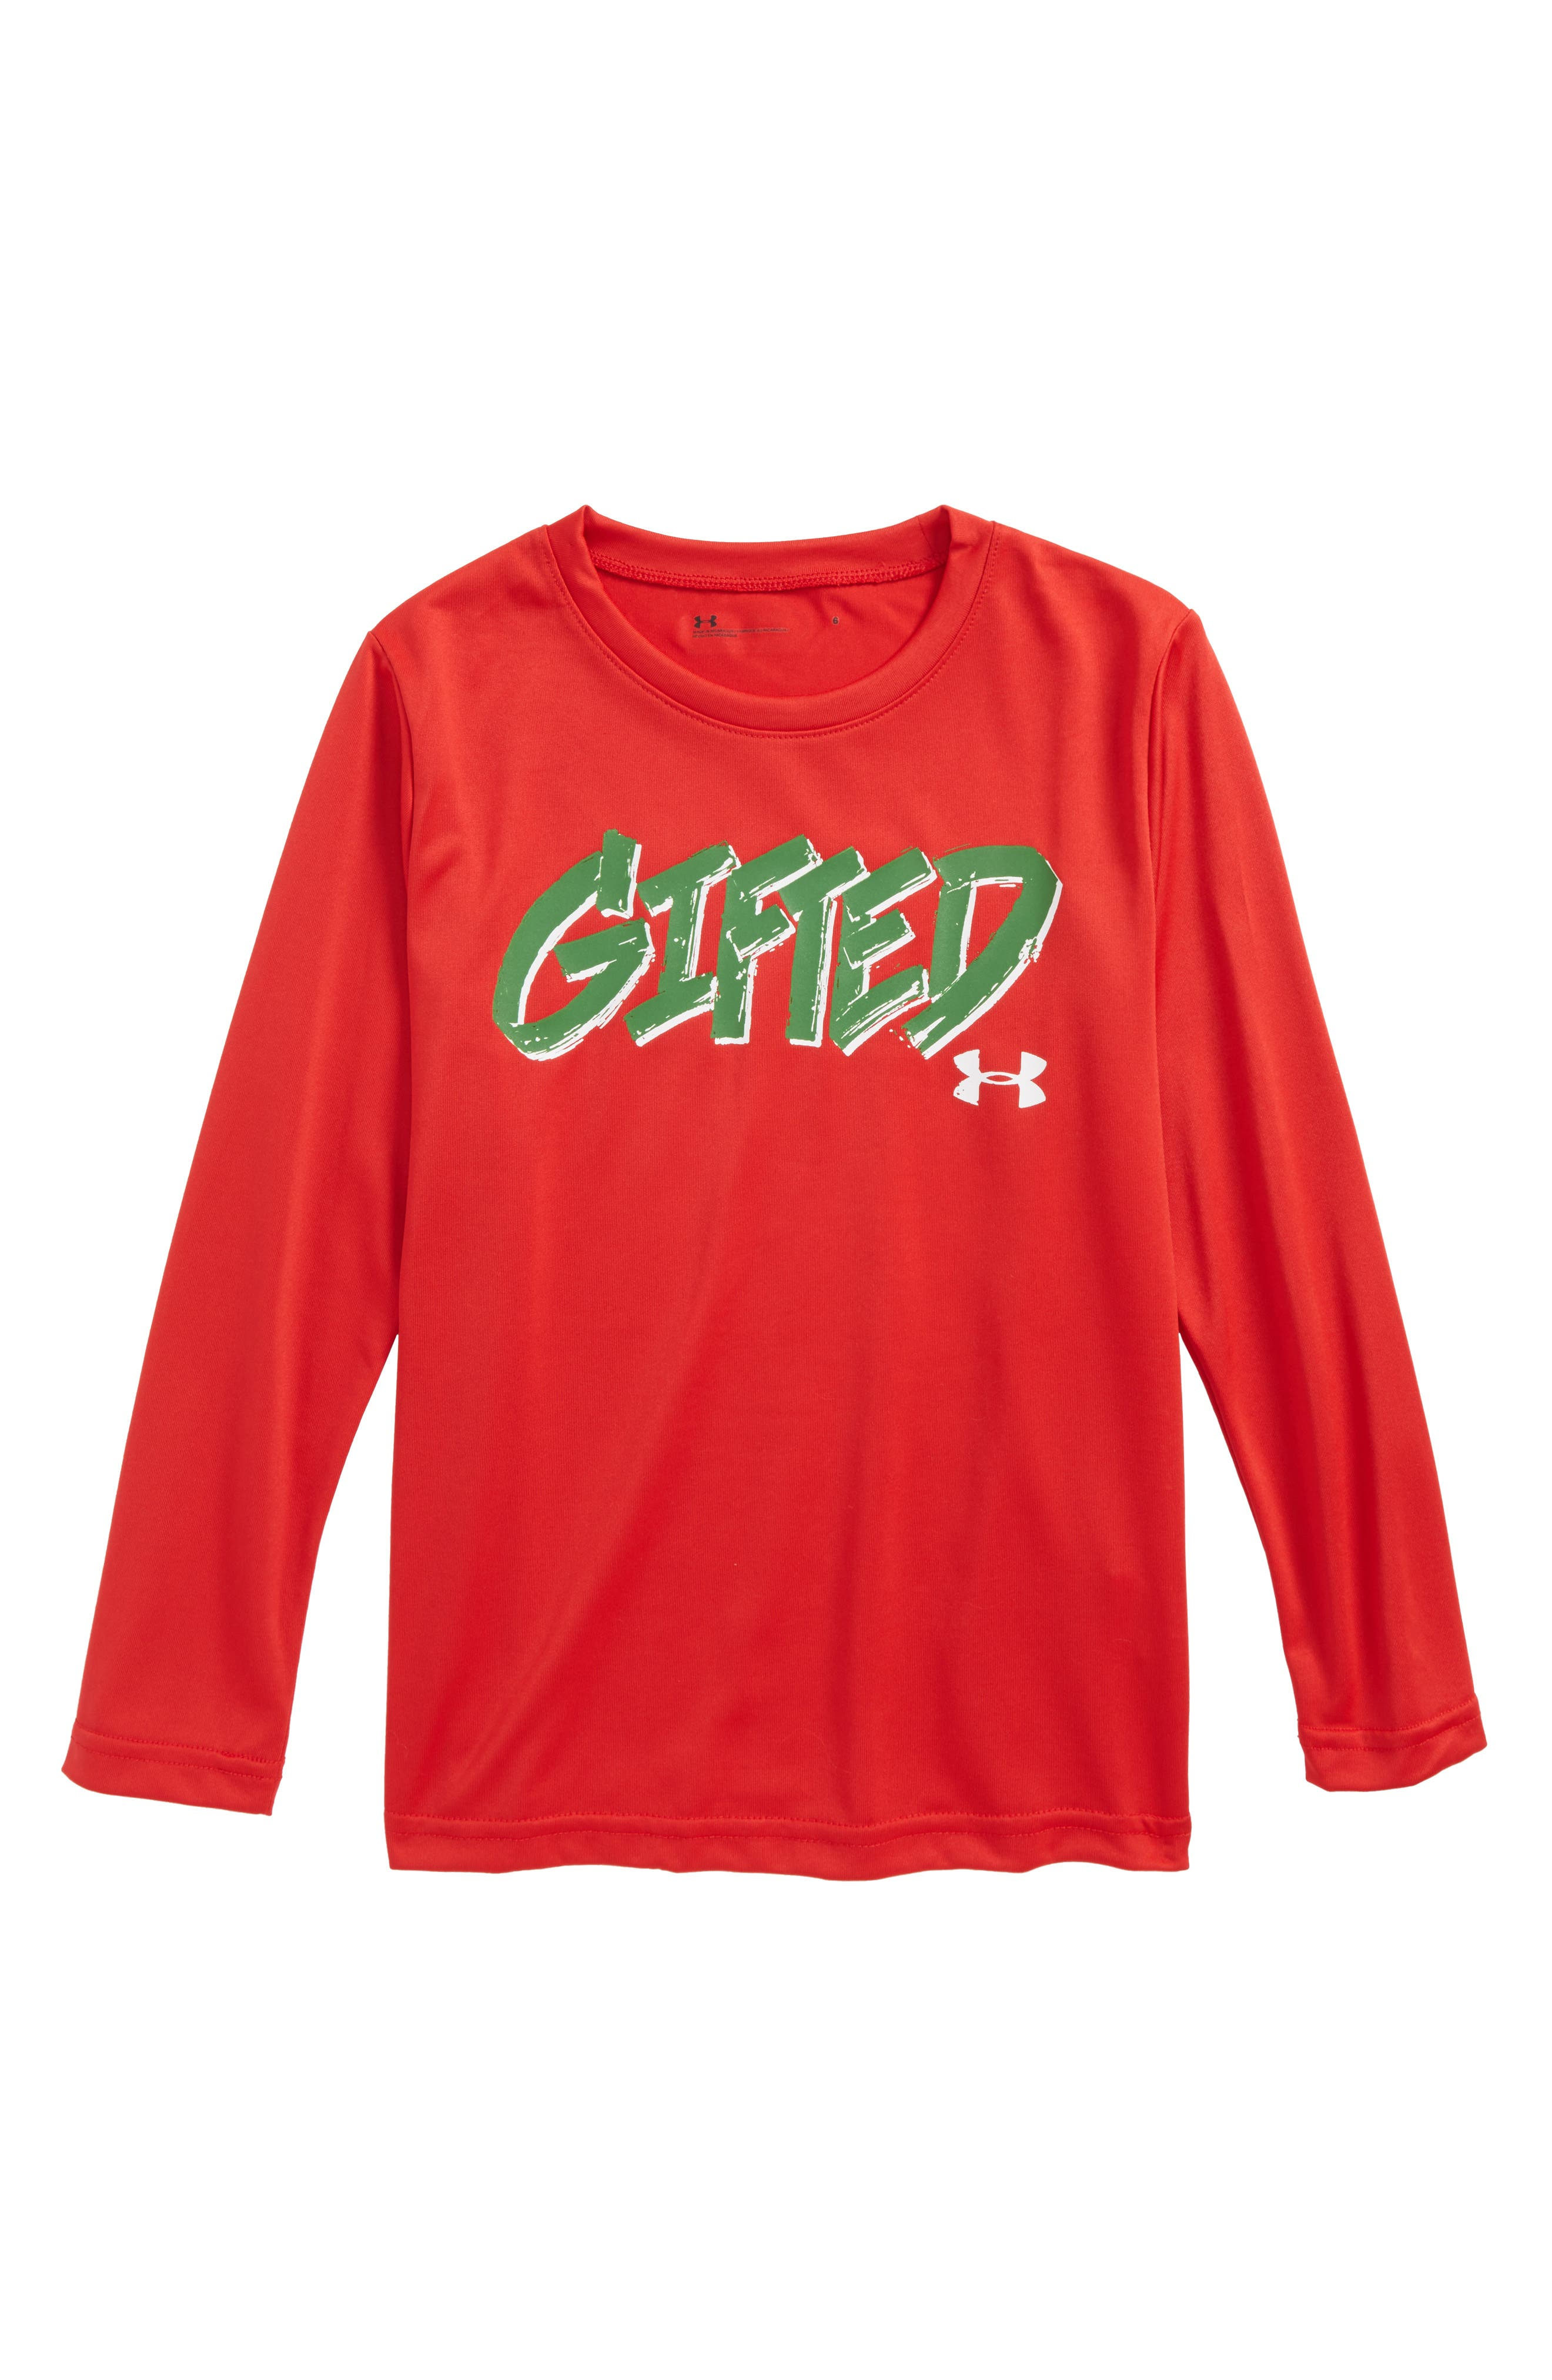 Alternate Image 1 Selected - Under Armour Gifted T-Shirt (Toddler Boys & Little Boys)